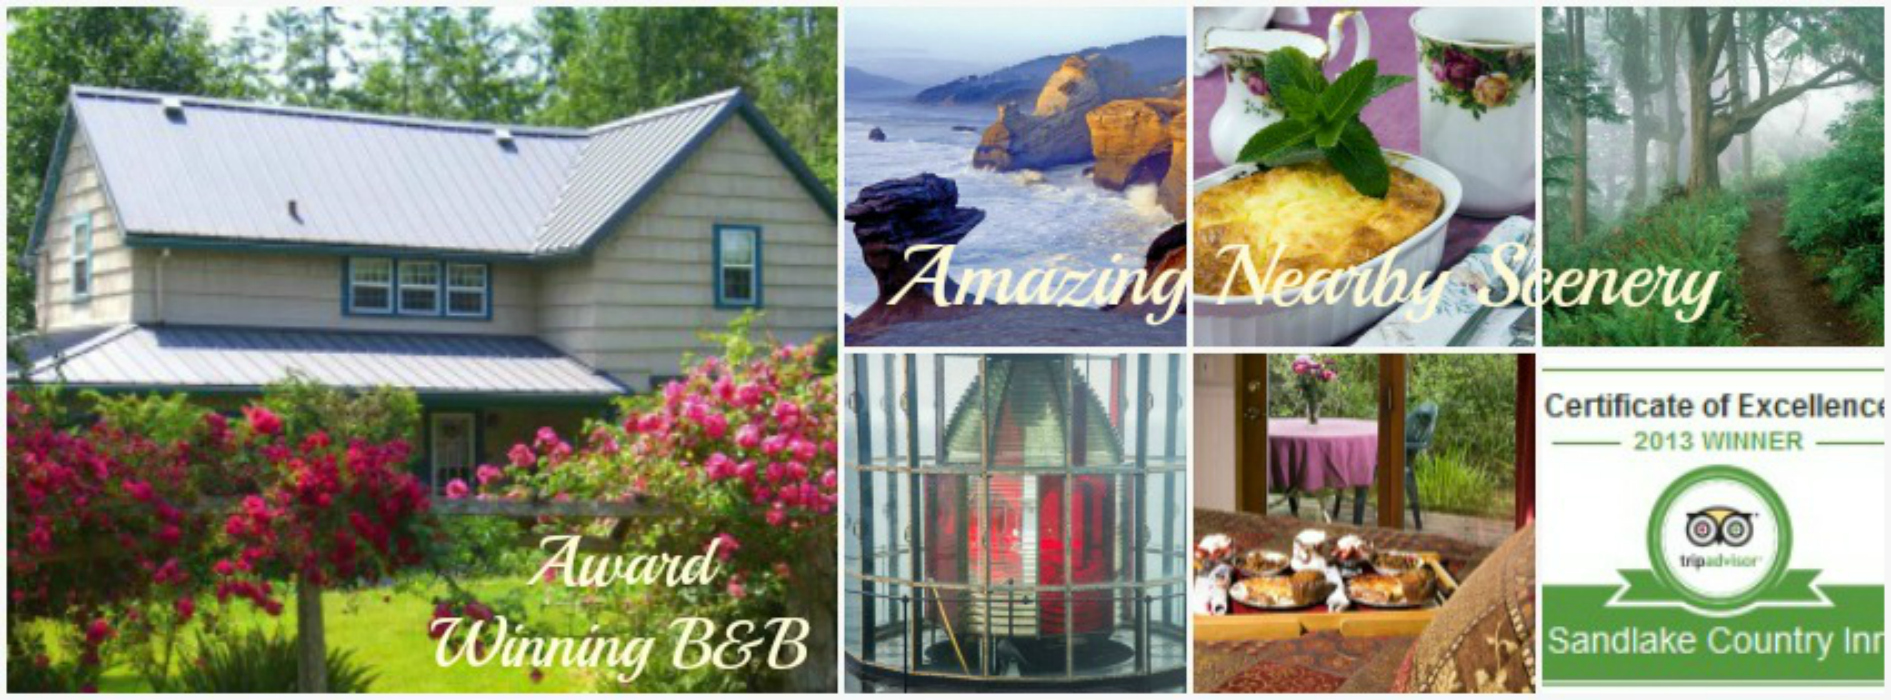 neskowin personals East oregon vacation rentals - craigslist cl (bnd neskowin) pic map hide this posting restore restore this posting $155 favorite.